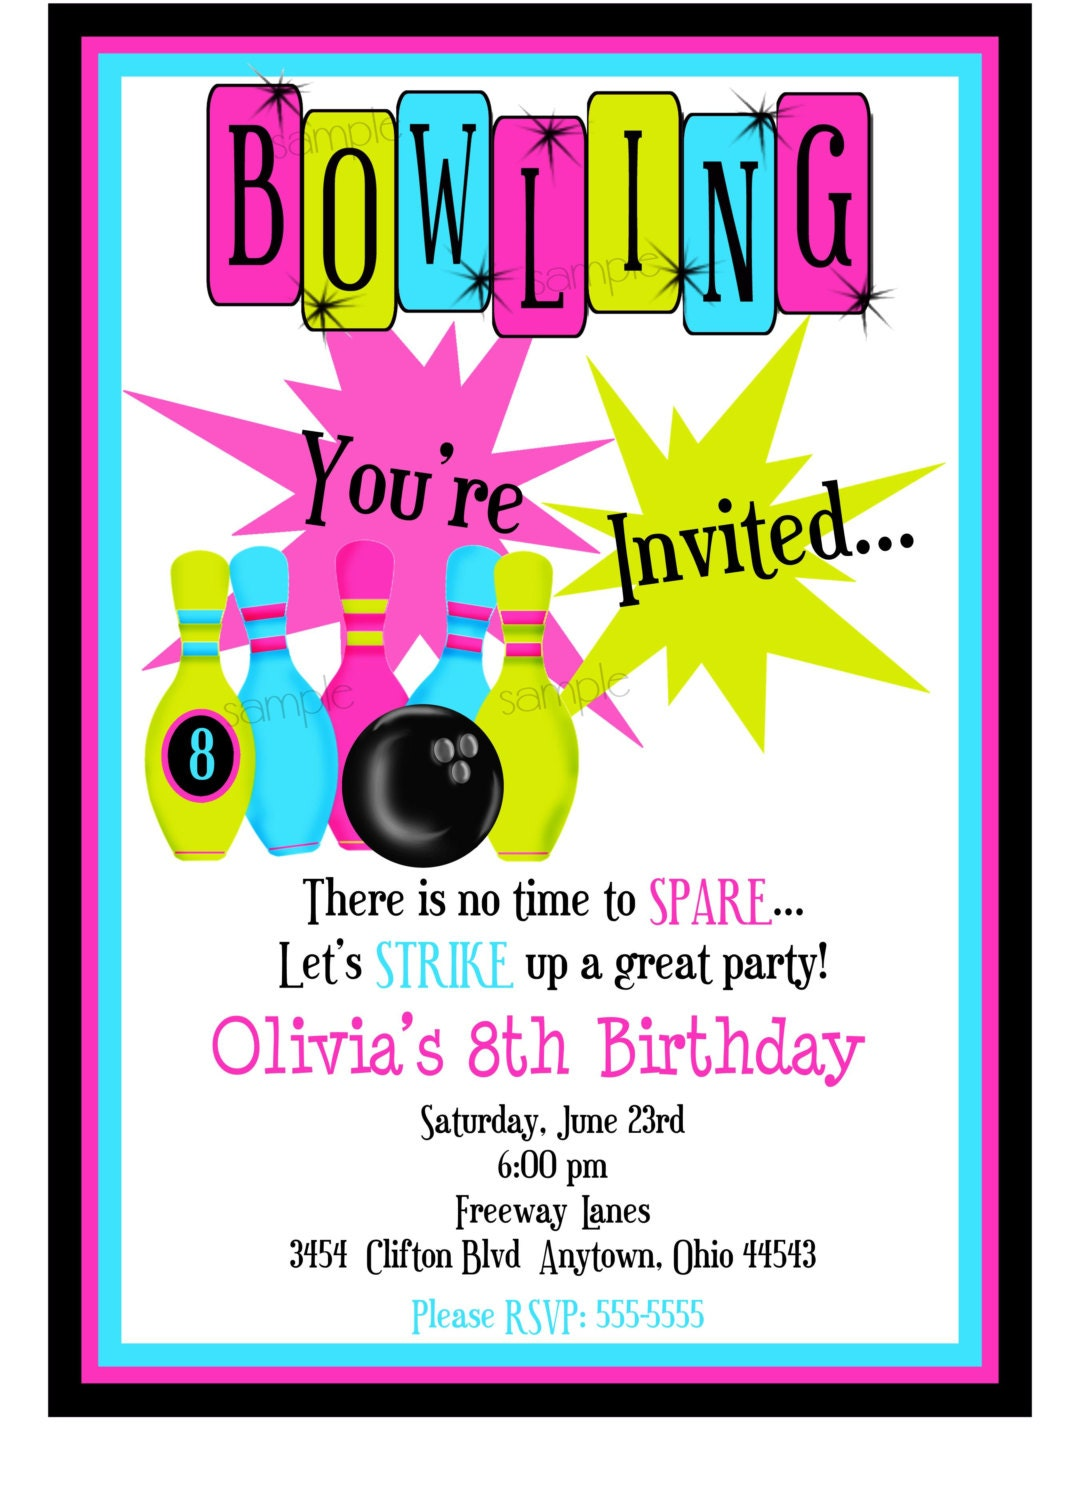 Bowling Invitations, Bowling Birthday Party, Cosmic ...